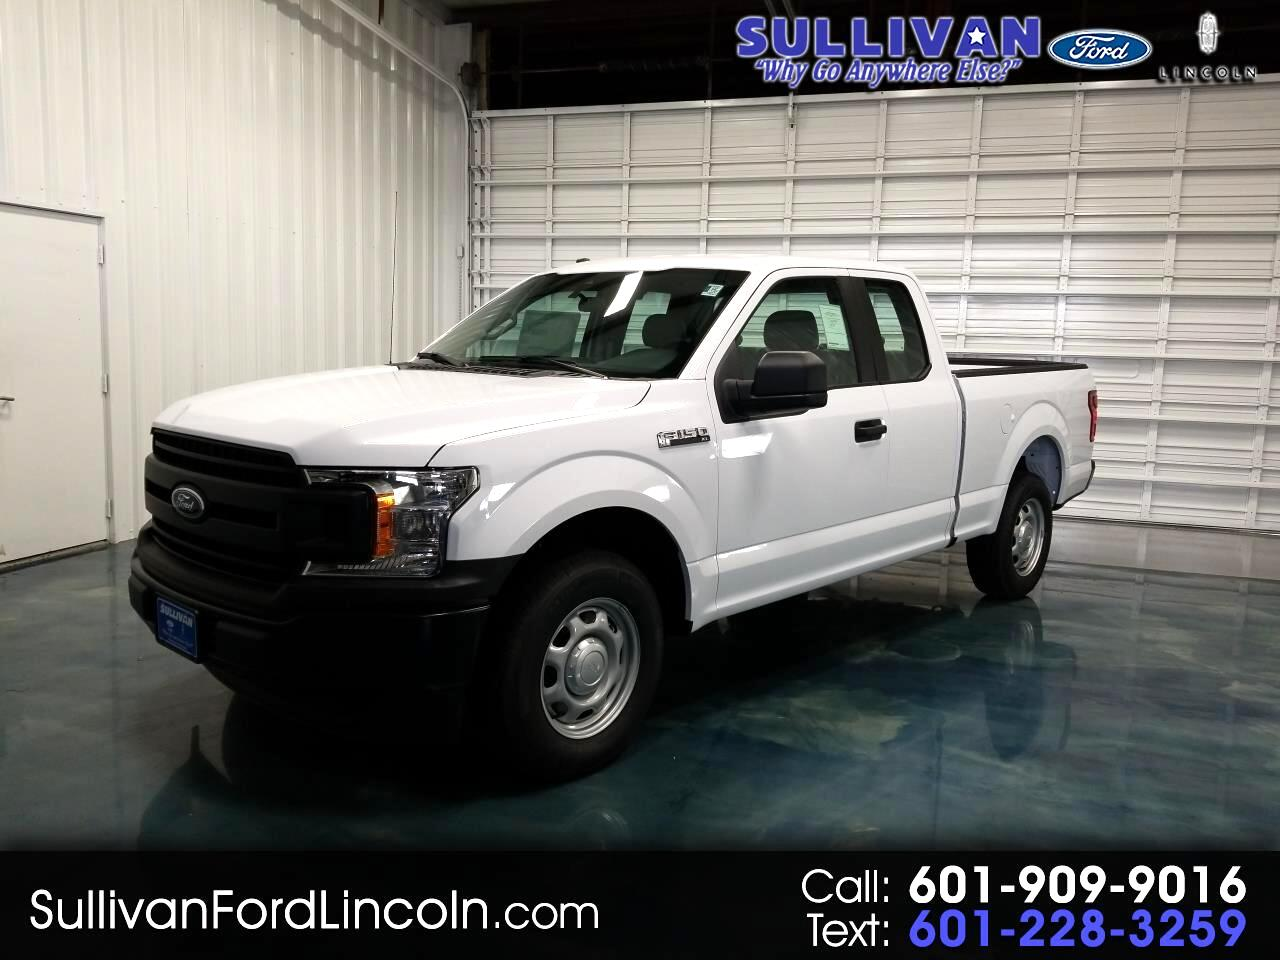 2019 Ford F-150 Supercab 145